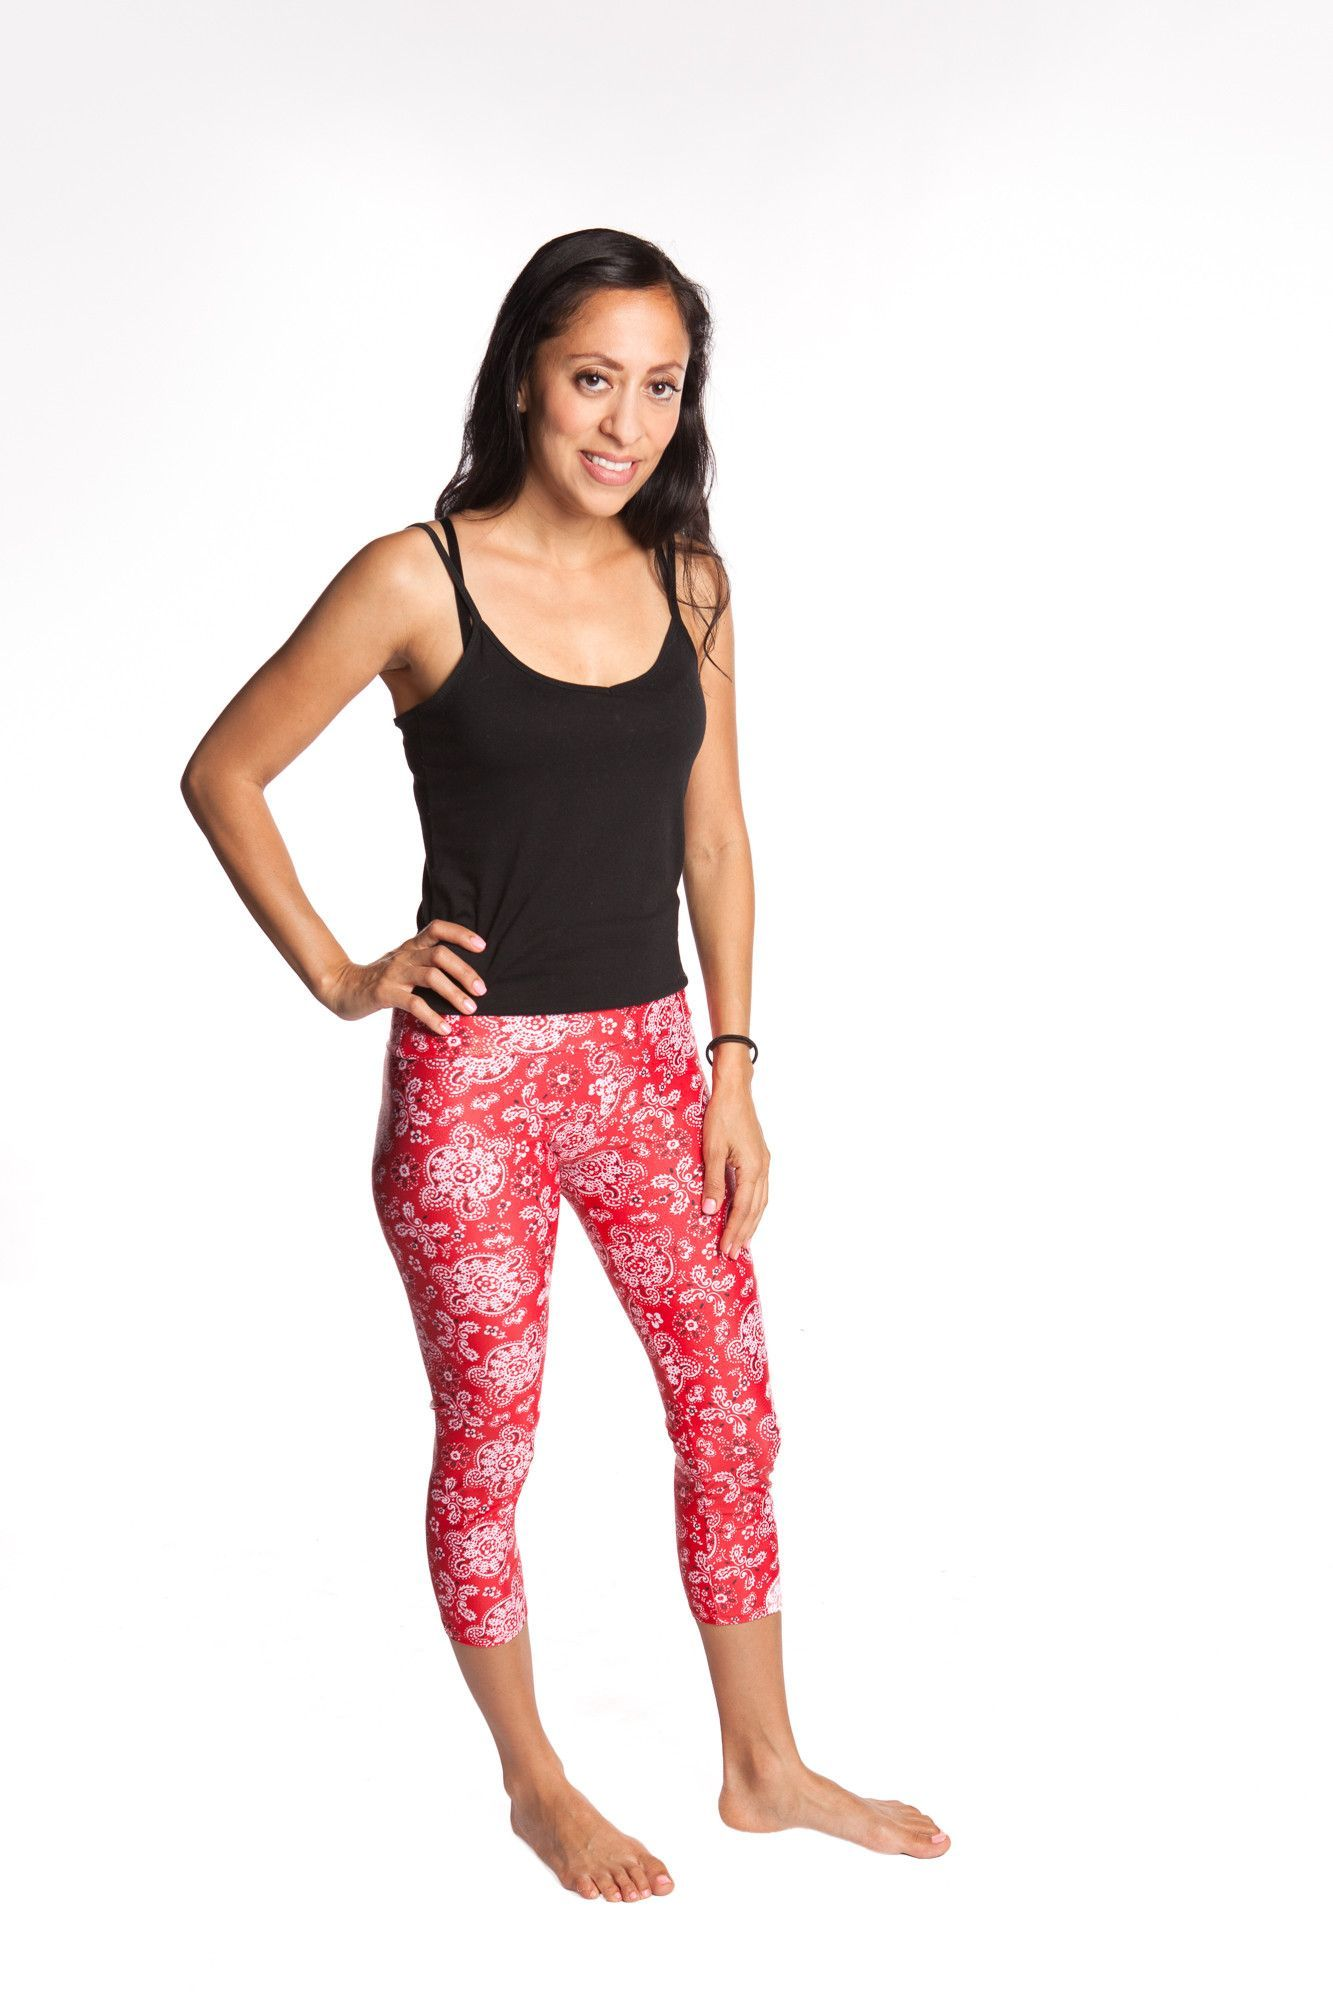 d76a6f7ce0 Women's Workout Leggings. YogaBerries Capri Multisport Tights Printed  Stretchy Soft Active, 4 way stretch Moisture Wicking Spandex Eco-Friendly  ...